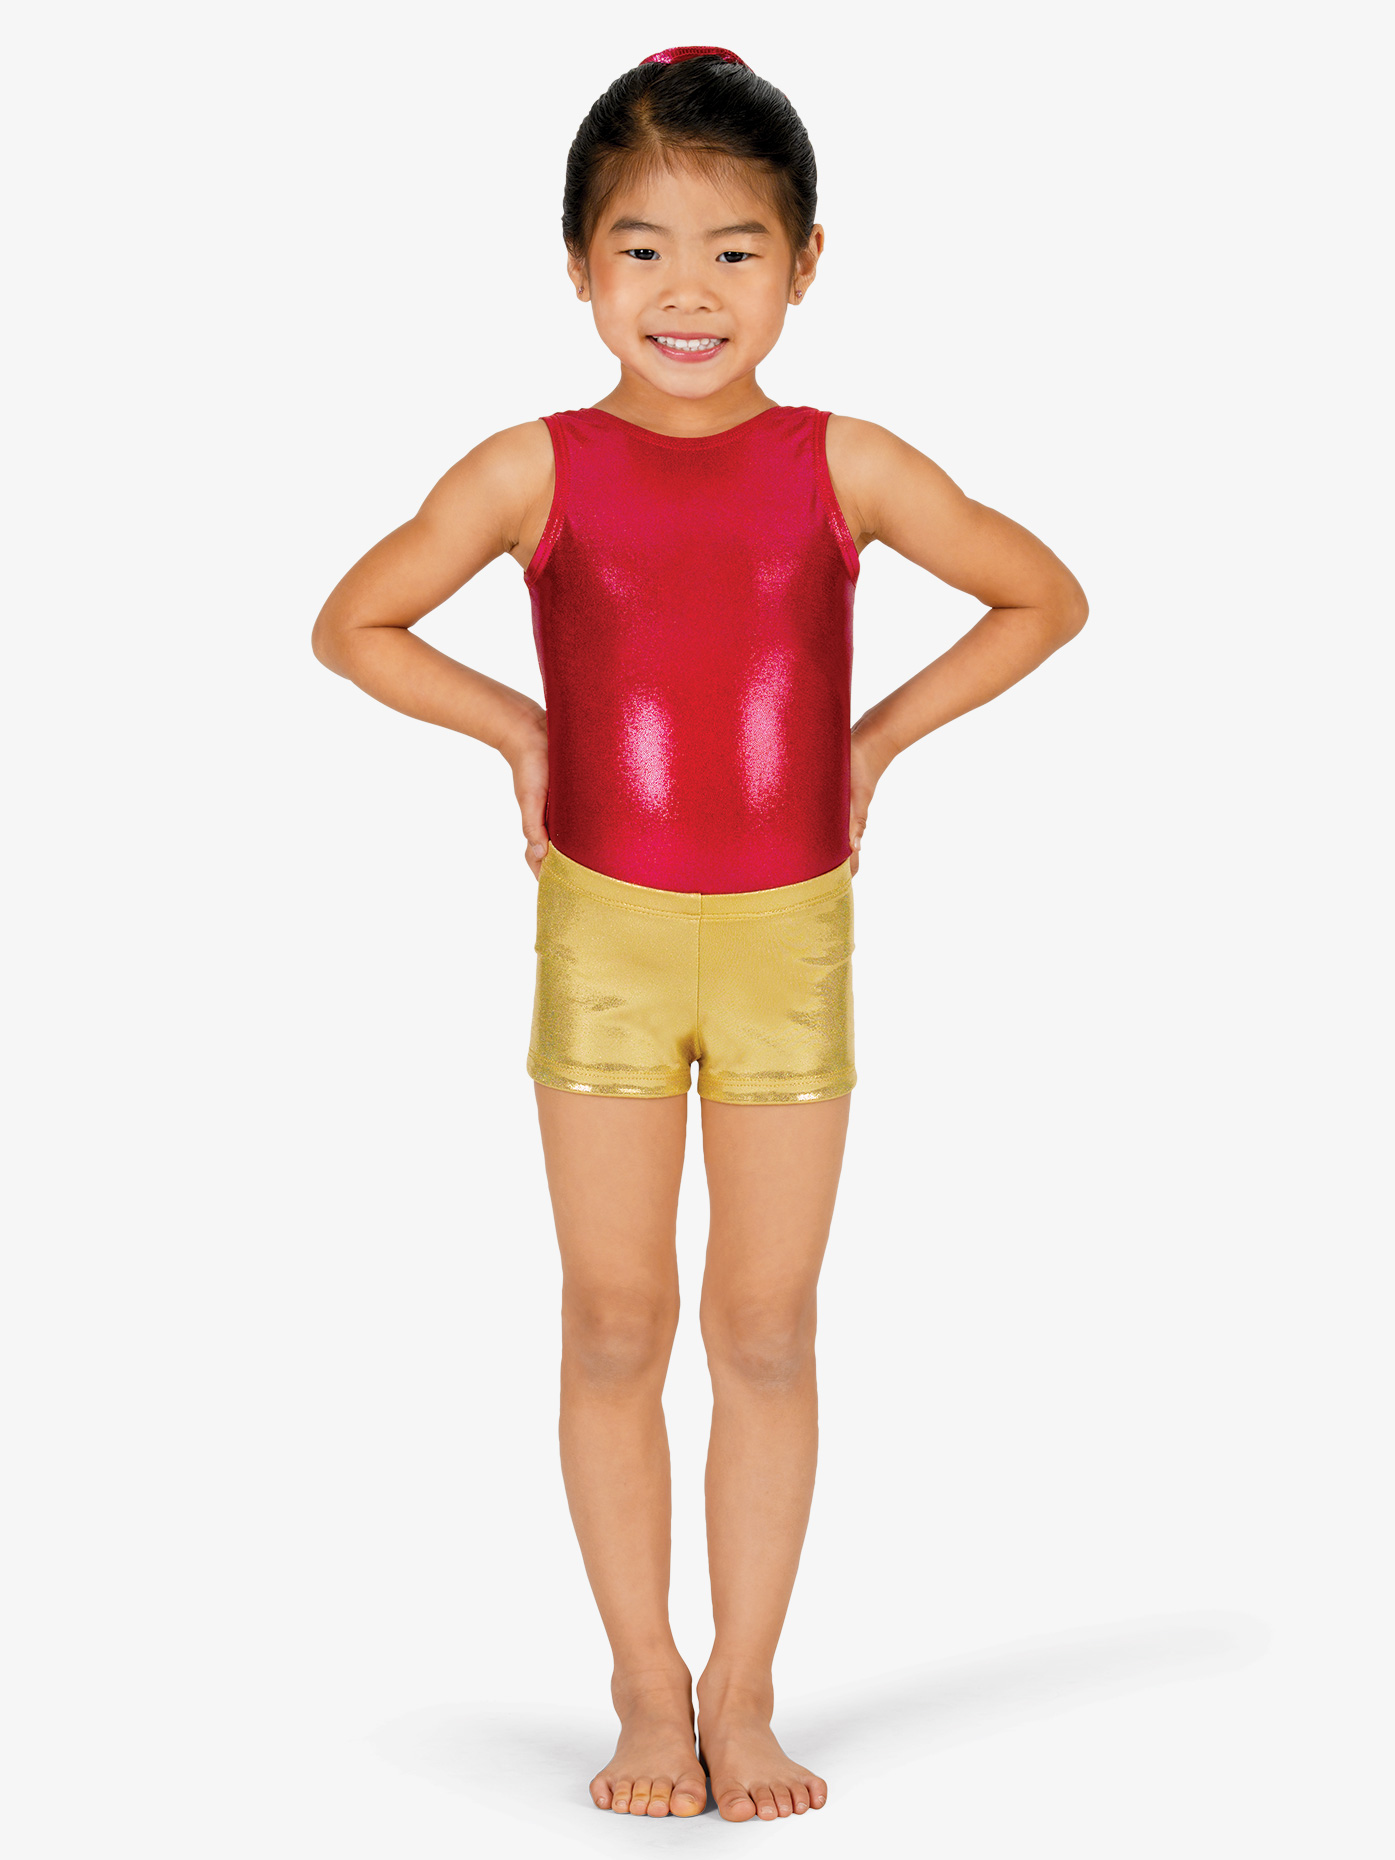 Gymnastics Shorts and Top  Child Size: S Dance M.